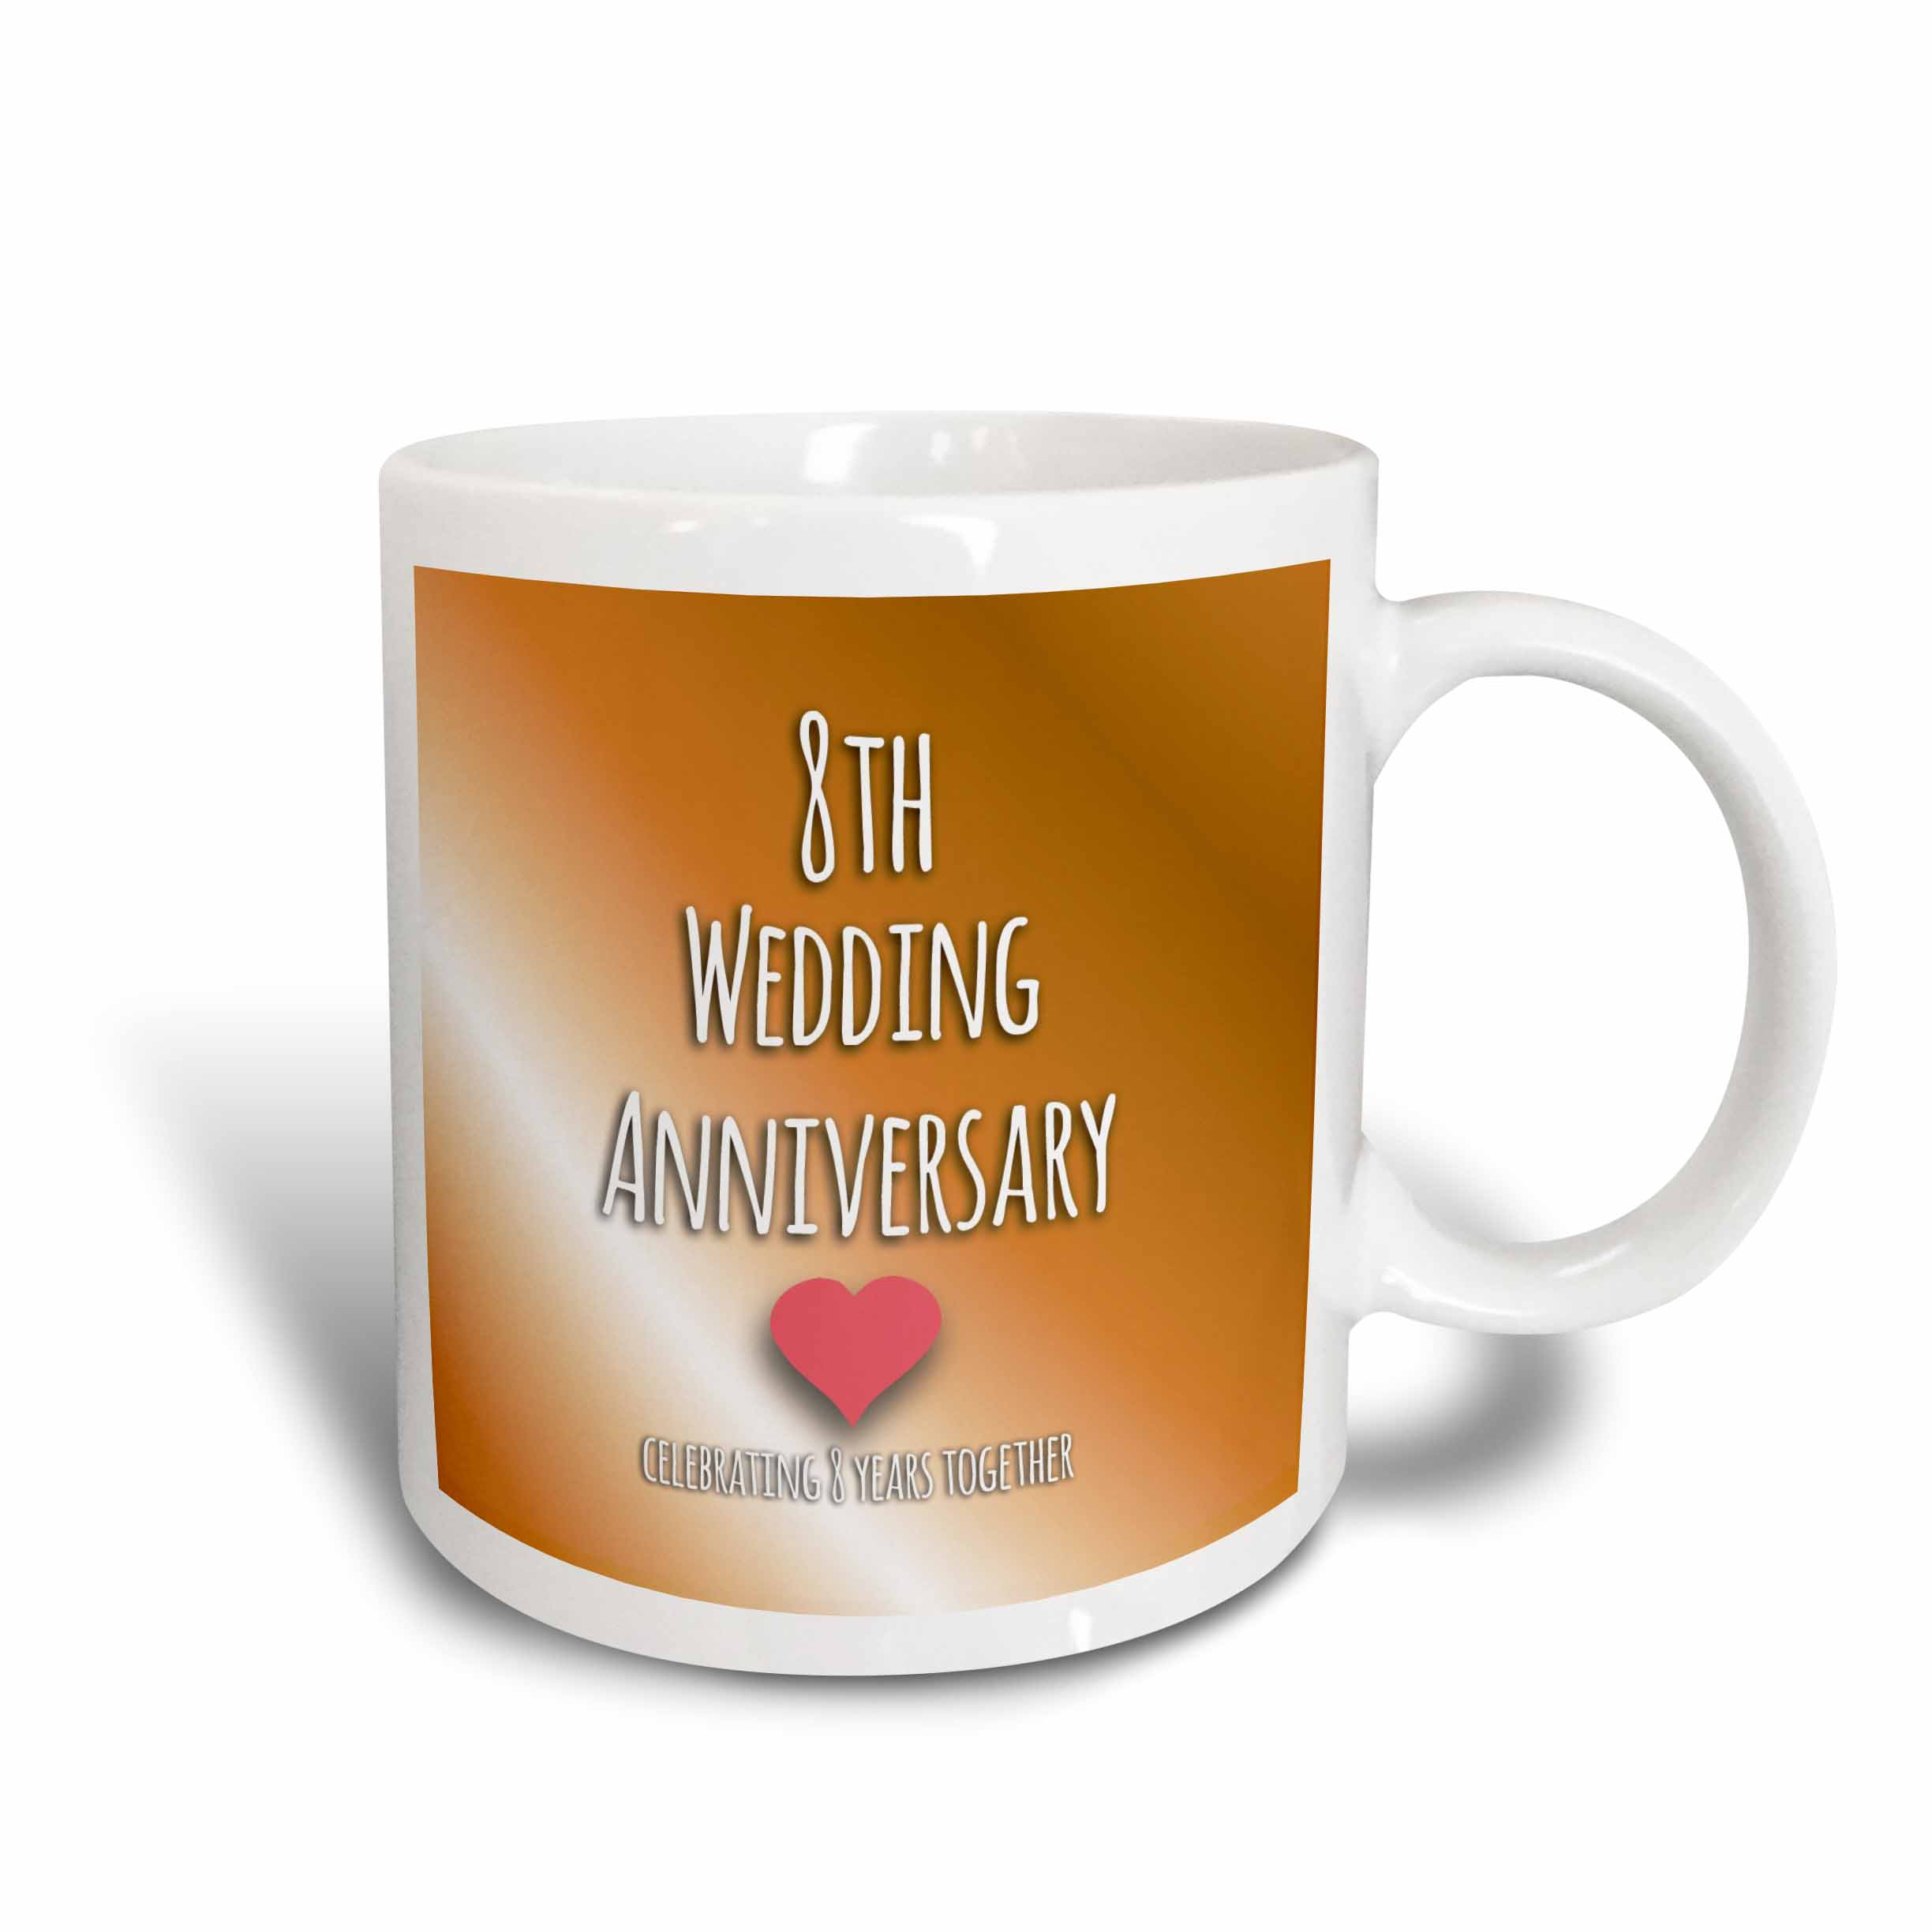 3dRose 8th Wedding Anniversary gift - Bronze celebrating 8 years together eighth anniversaries eight yrs, Ceramic Mug, 11-ounce